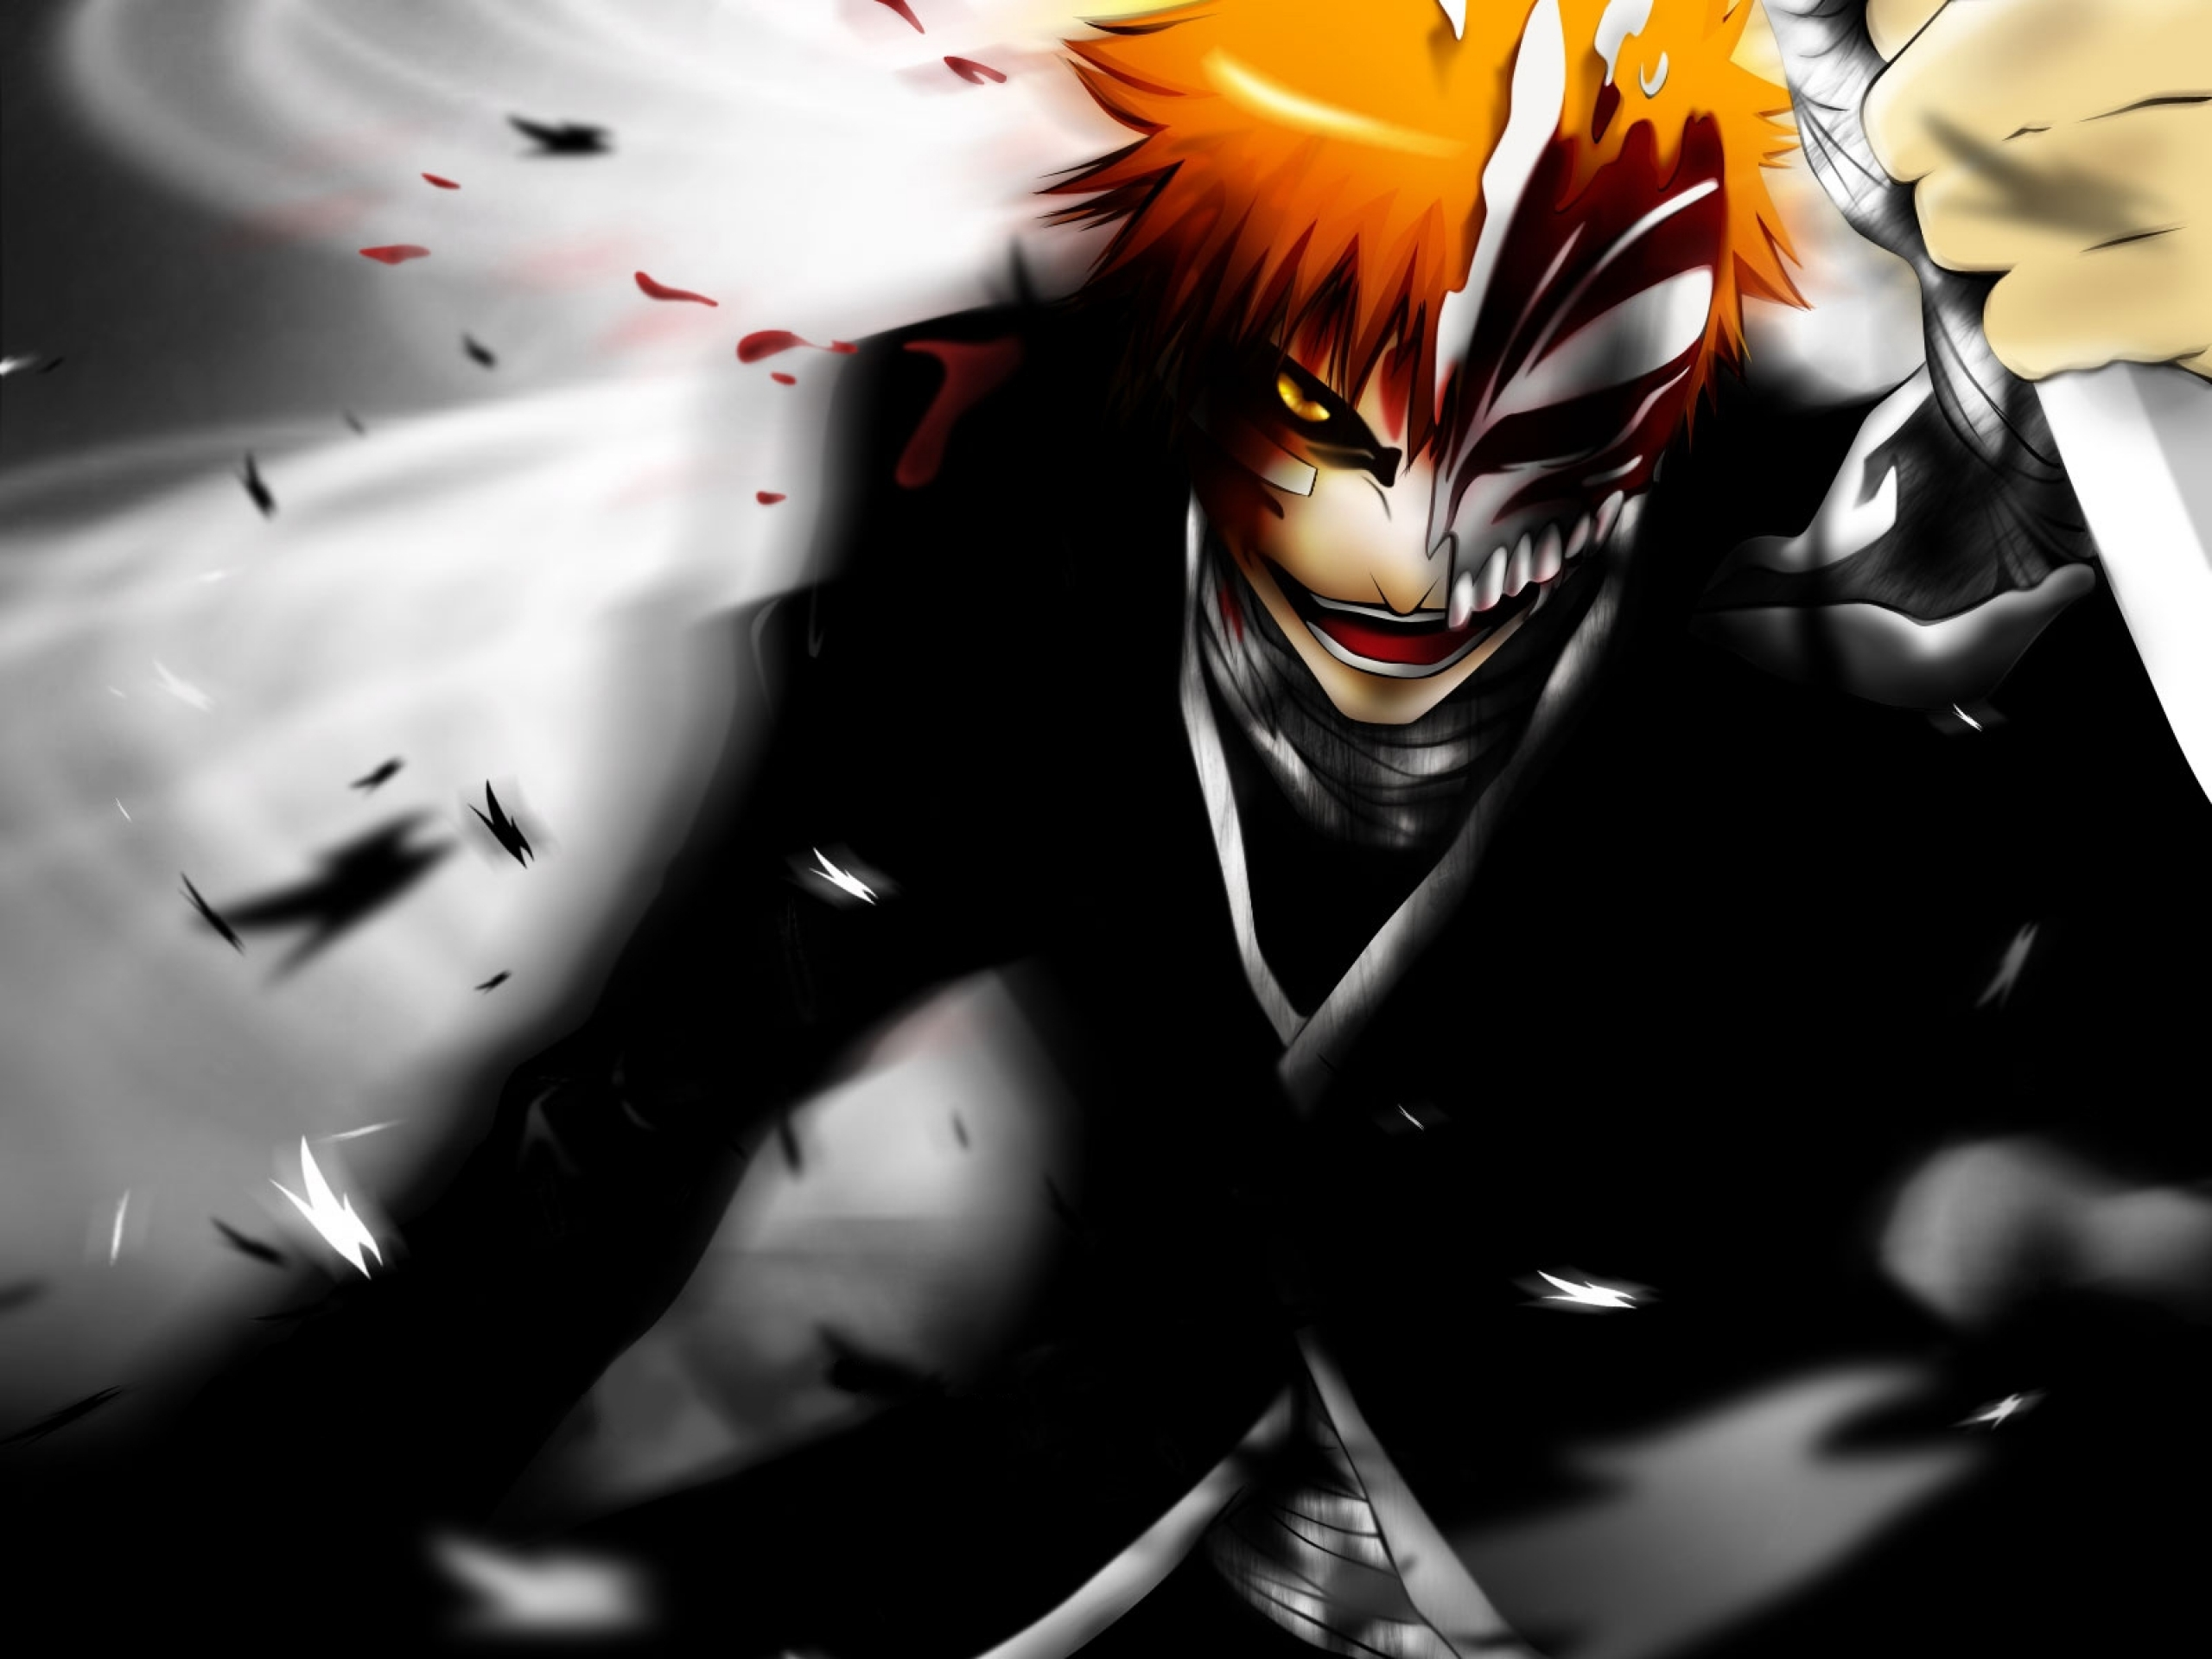 Bleach anime archives hdwallsource hdwallsource all posts tagged bleach anime voltagebd Images